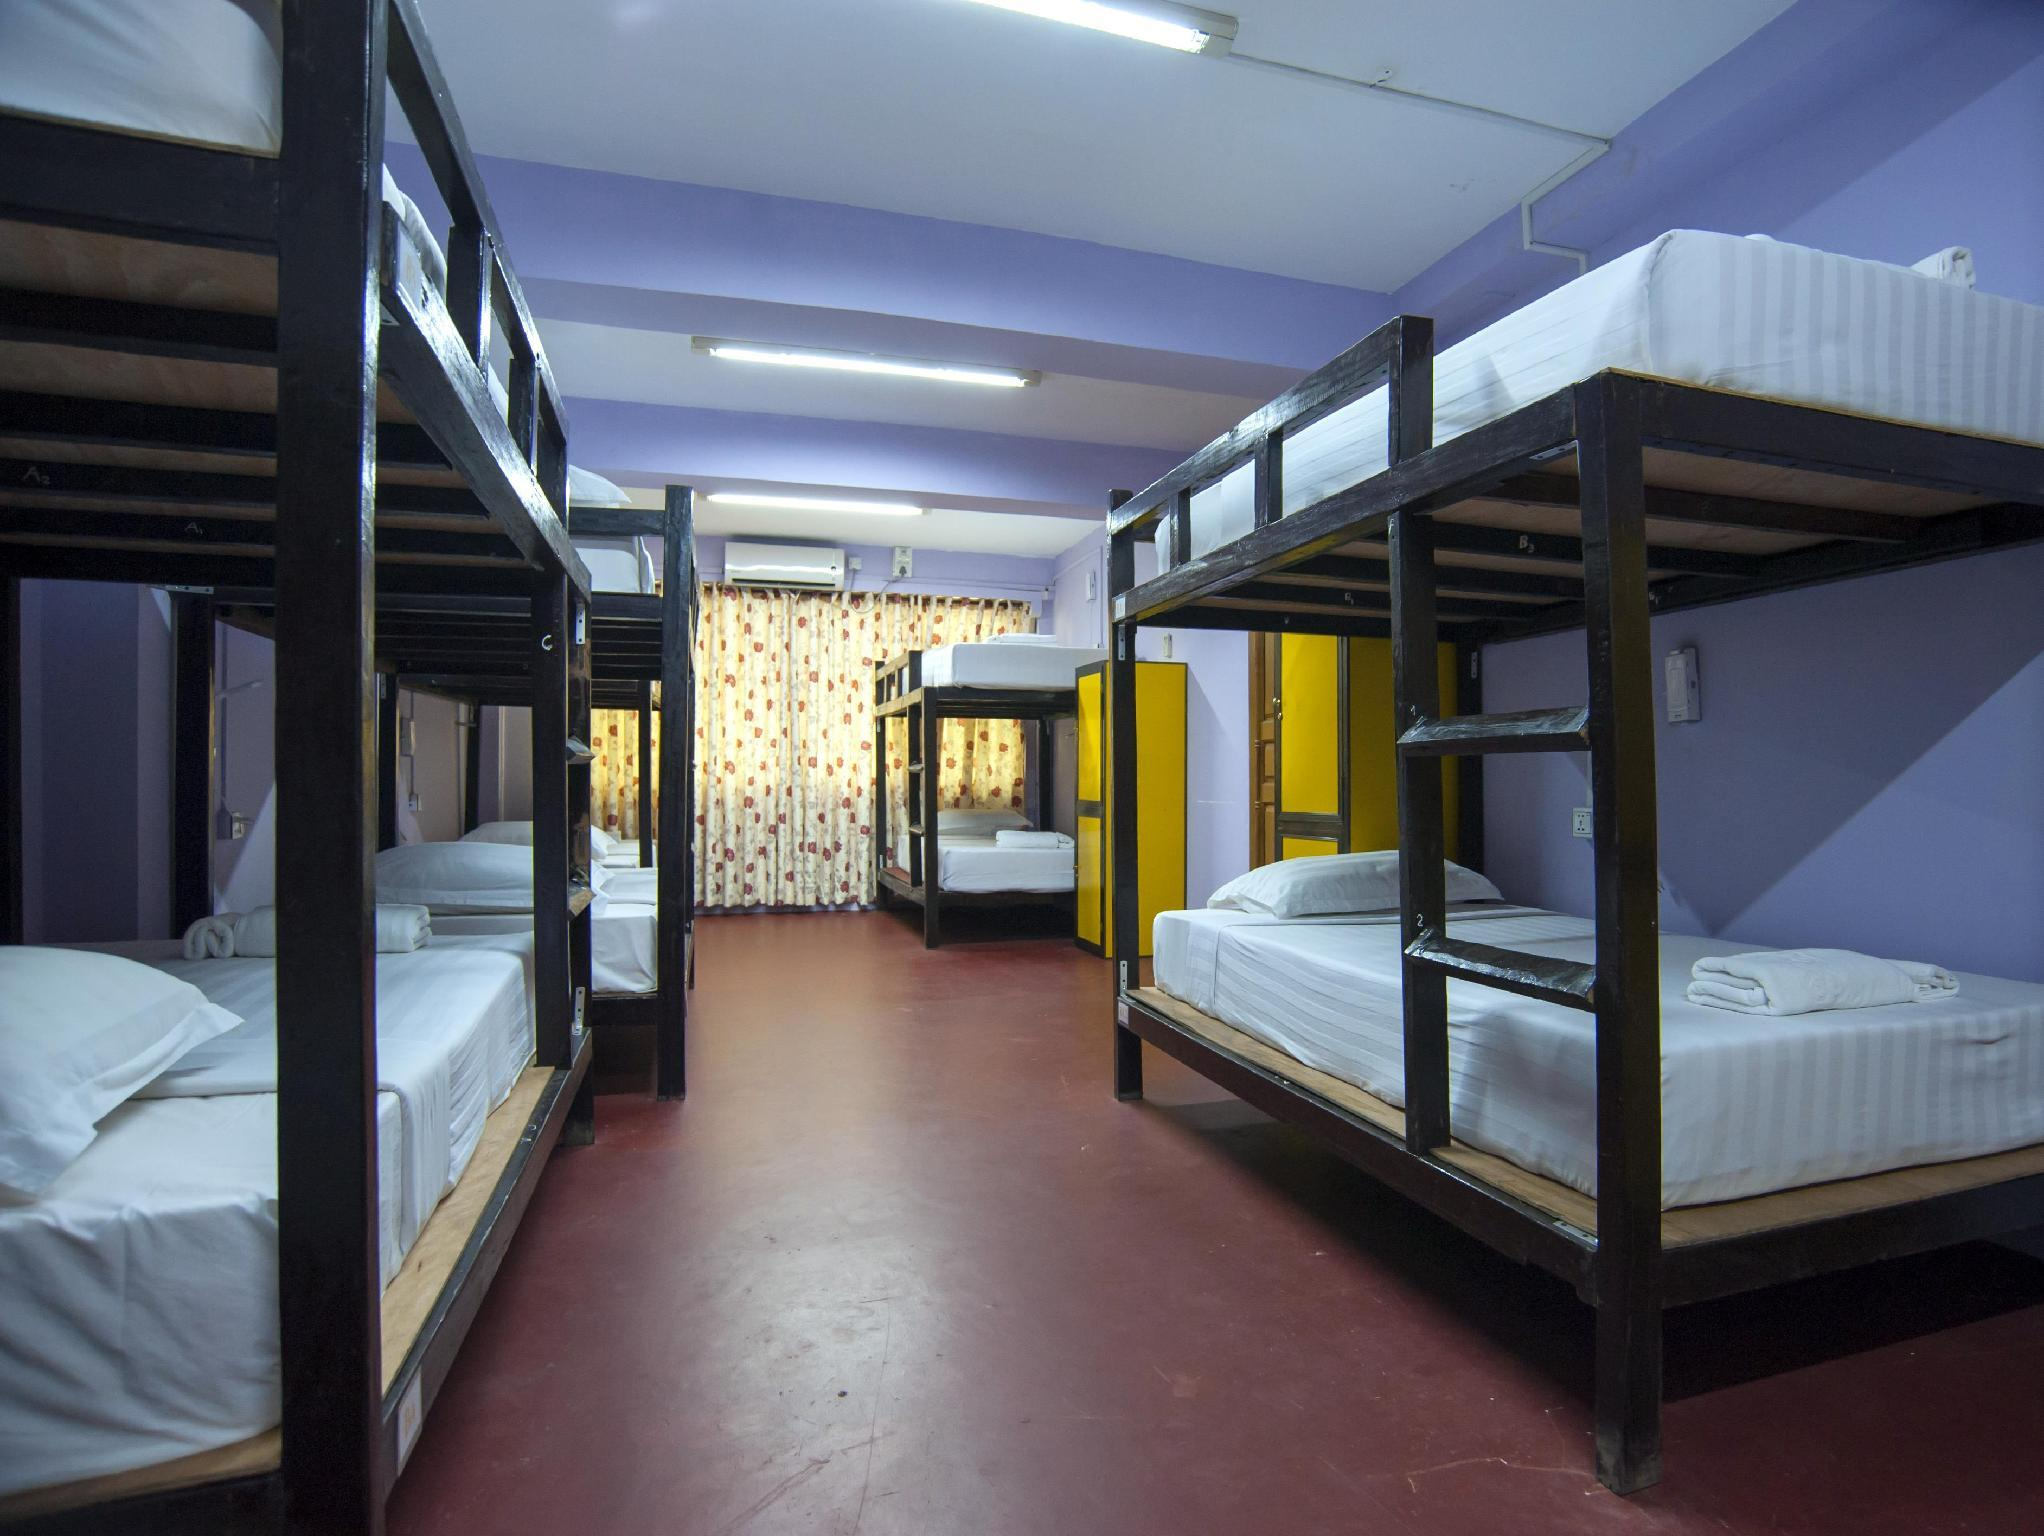 1 Cama en Dormitorio de 12 Camas (Mixta) (1 Person in 12-Bed Dormitory - Mixed)